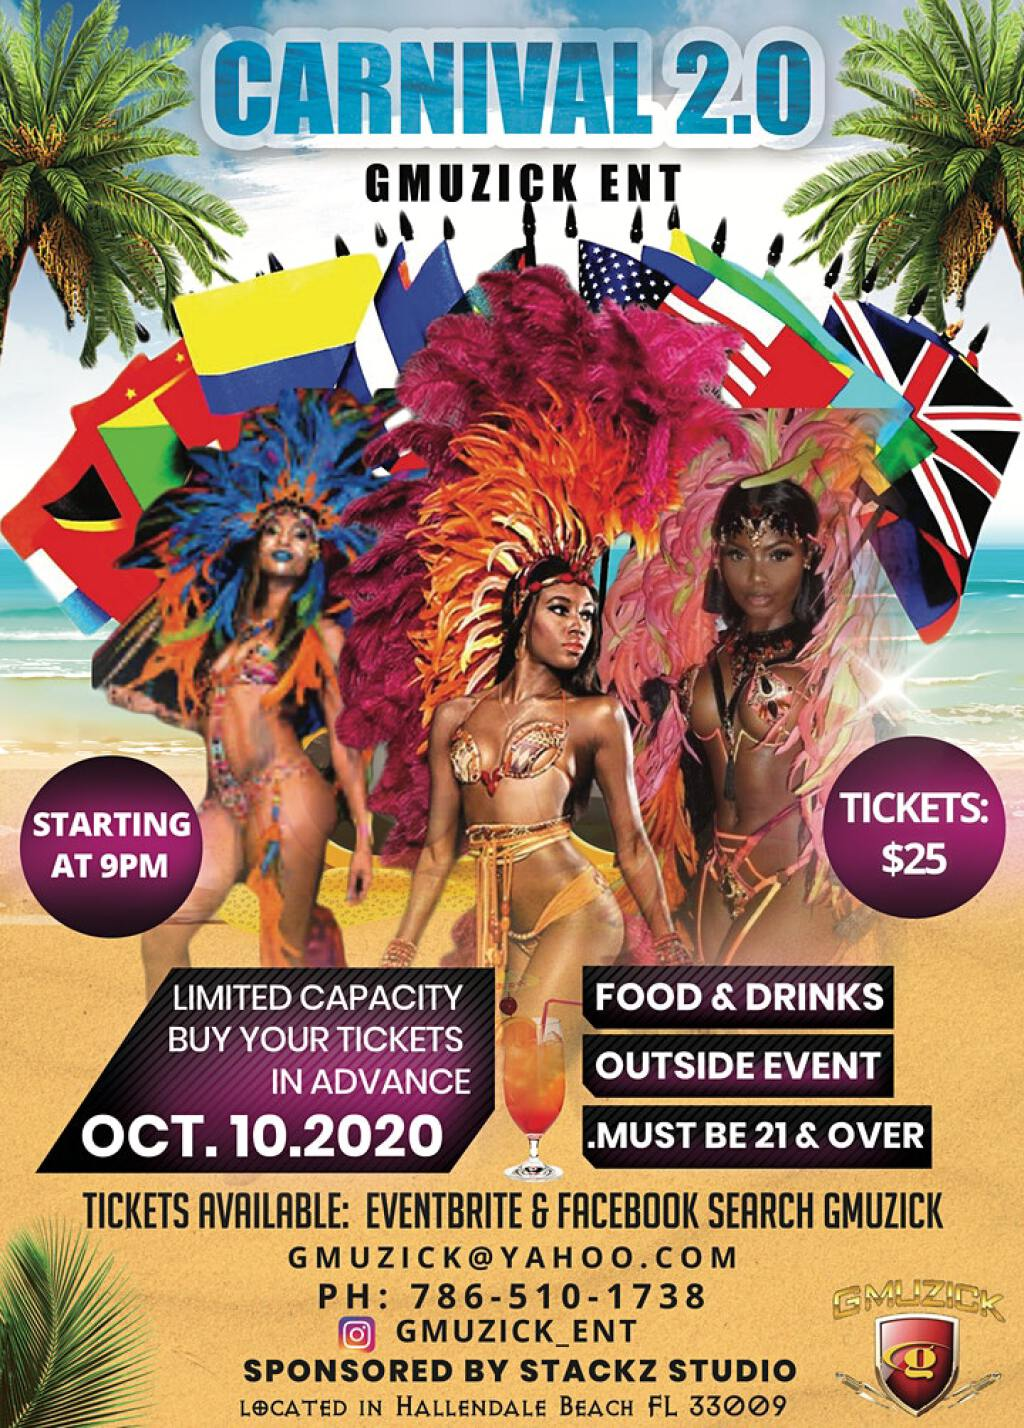 Carnival 2.0 flyer or graphic.